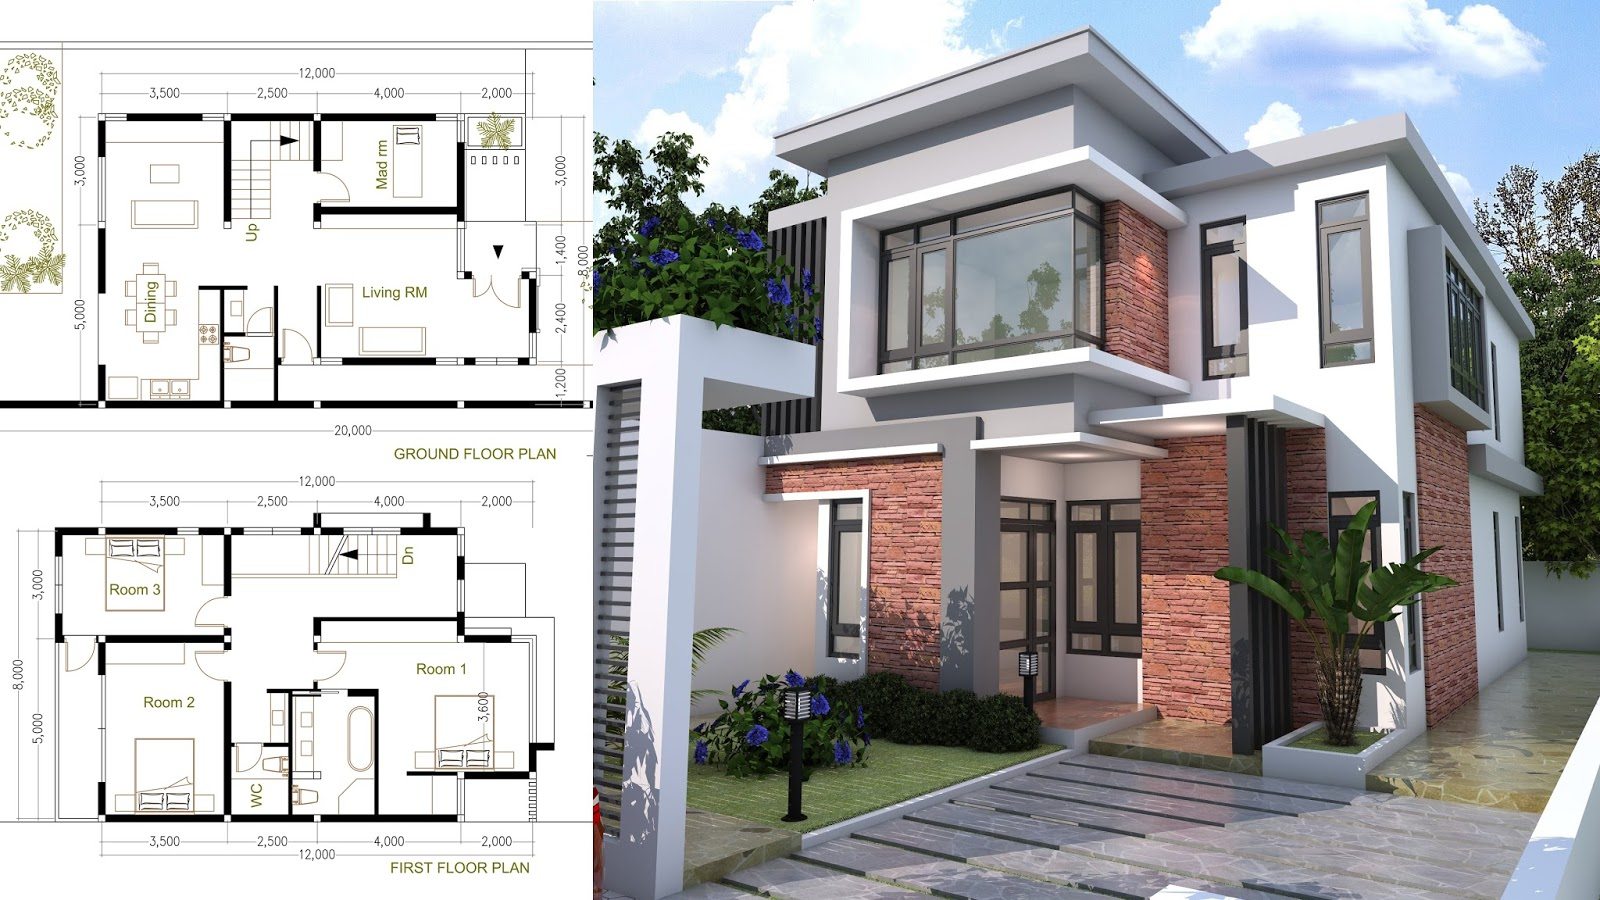 3 bedroom contemporary house plans sketchup modern home plan size 8x12m samphoas house plan 17980